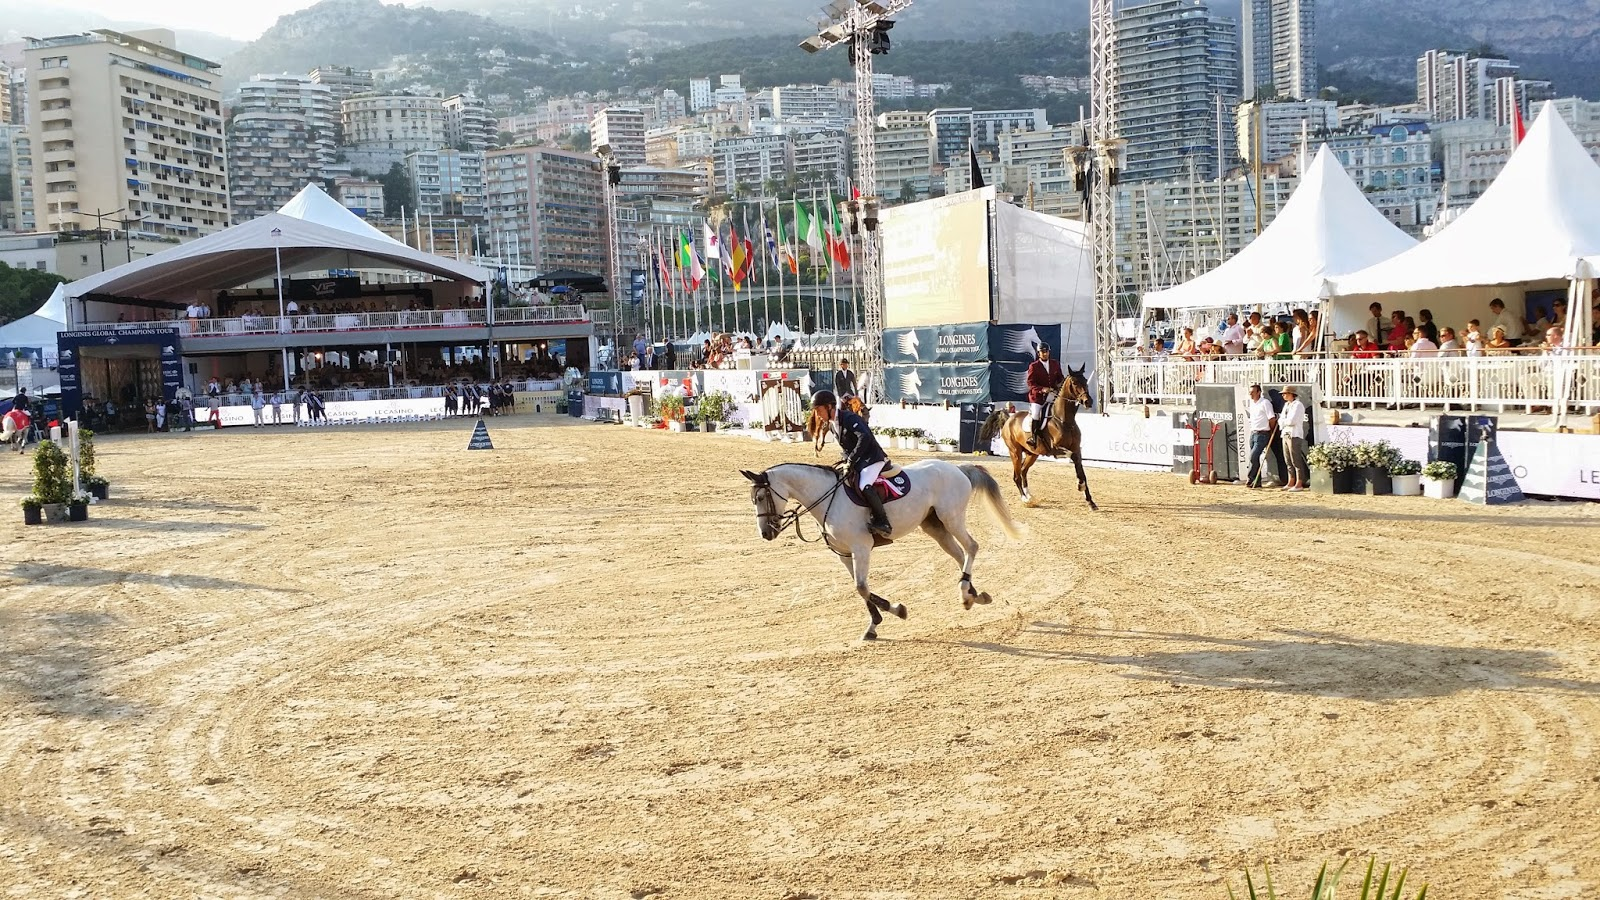 LONGINES Conquest, Global Champions Tour 2014 Montecarlo, cavalli, equitazione, show jumping